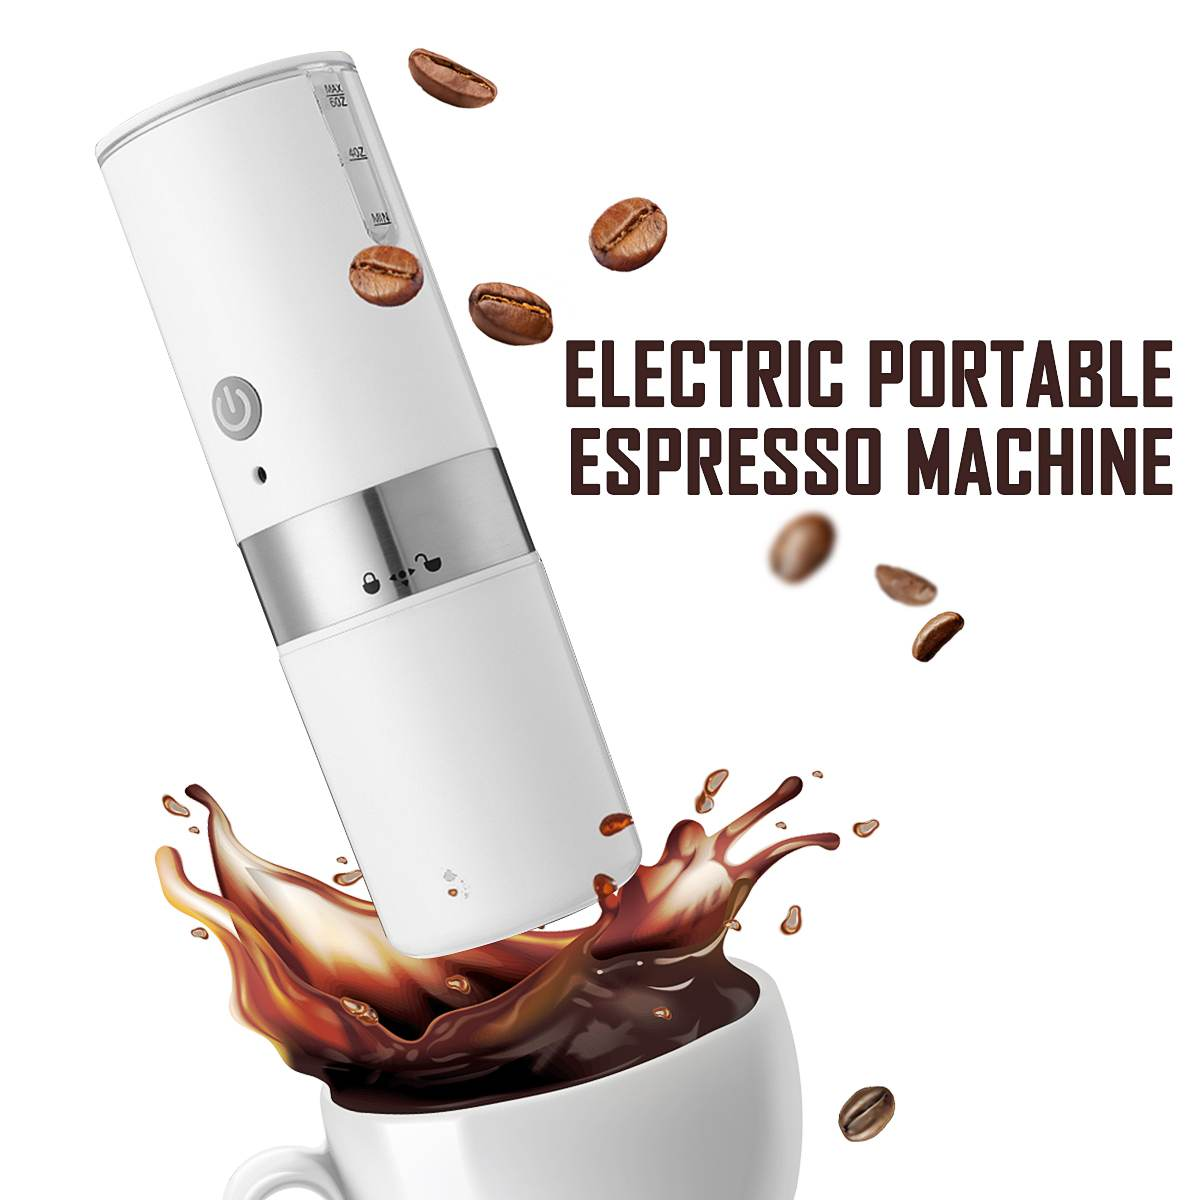 200ml Portable Coffee Machine Capsule Expresso Maker with Built-in Filter Electric USB Handheld Coffee Grinder For Home Travel